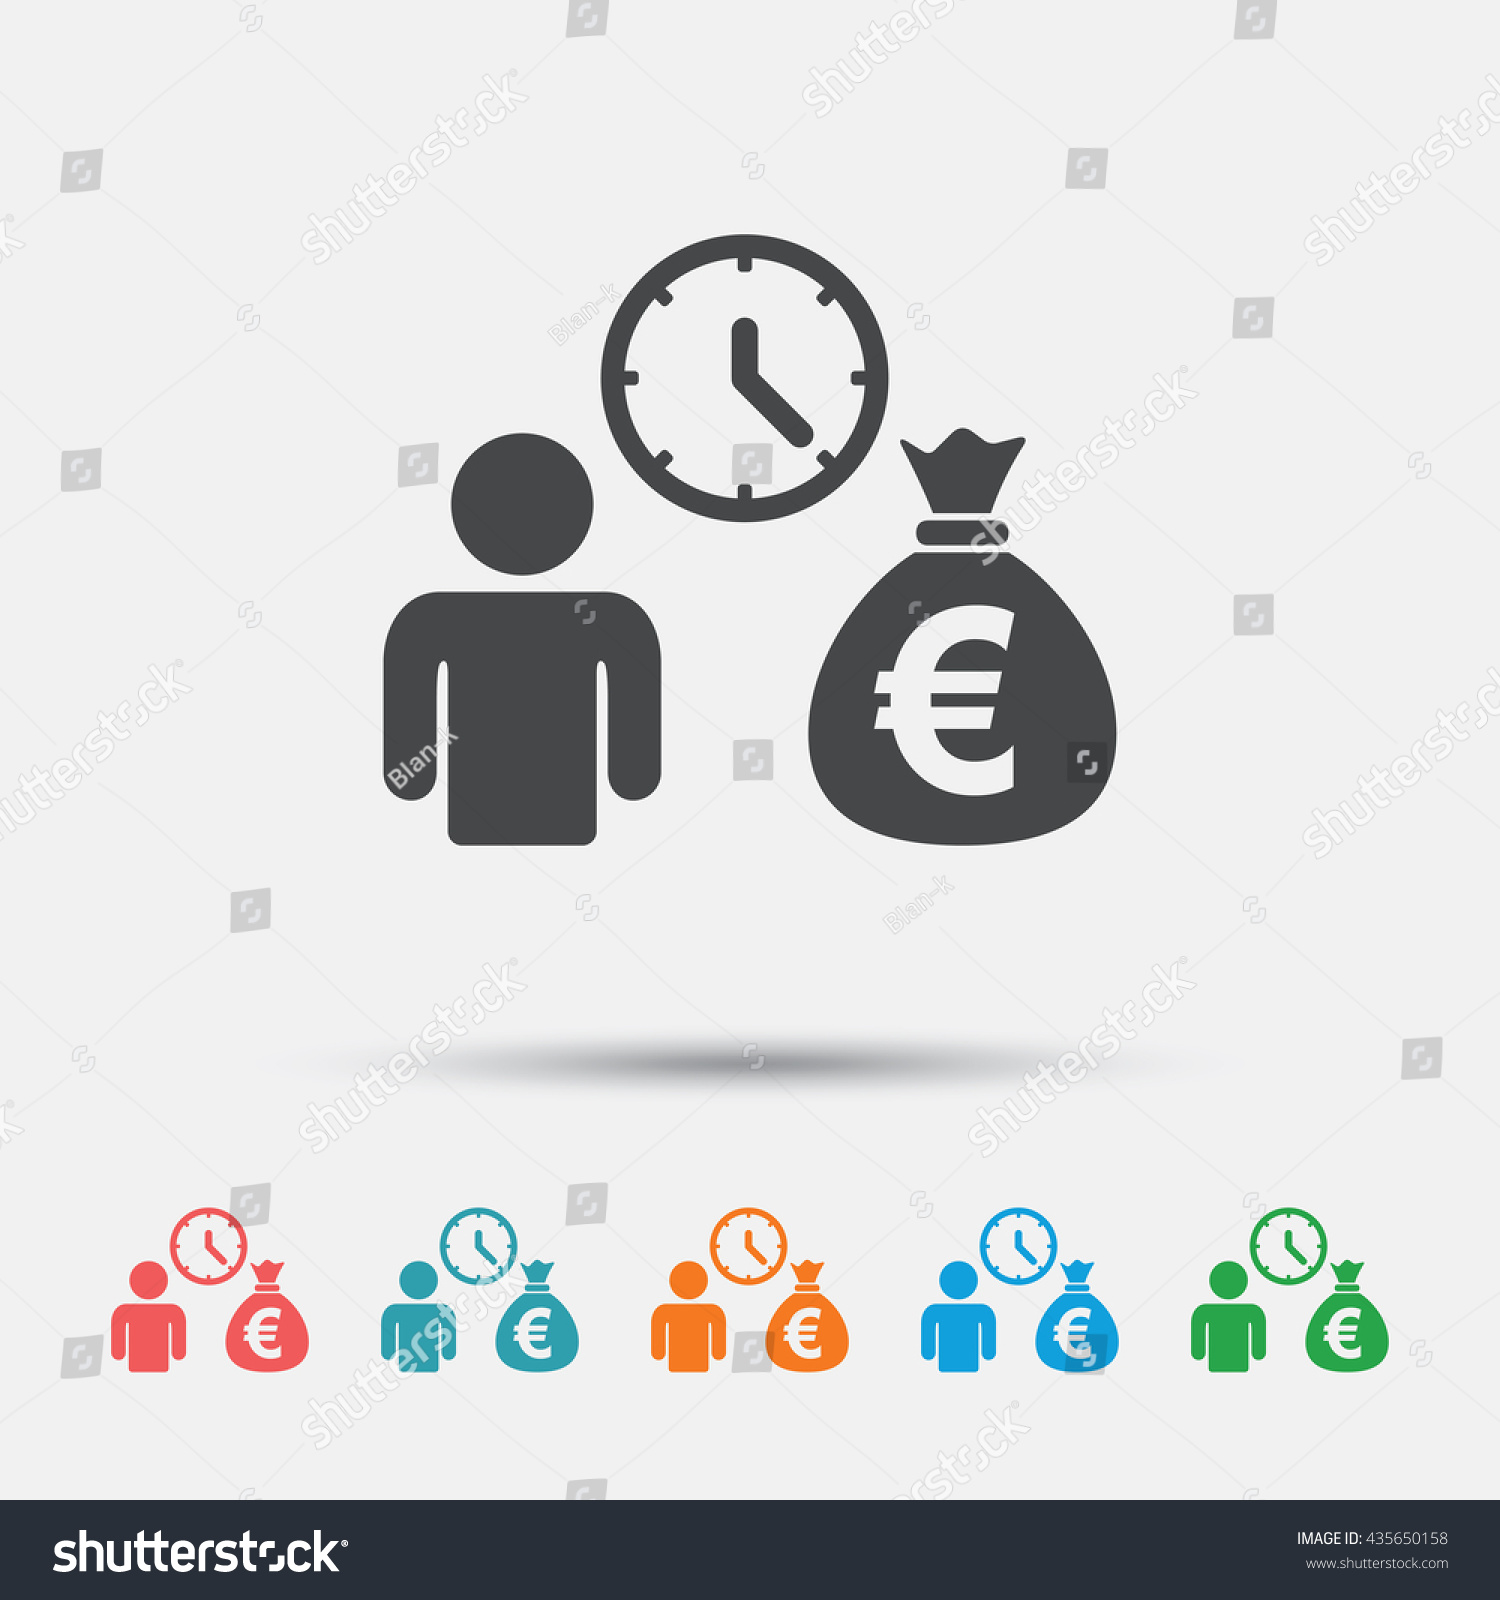 Bank Loans Sign Icon Get Money Stock Vector (Royalty Free) 435650158